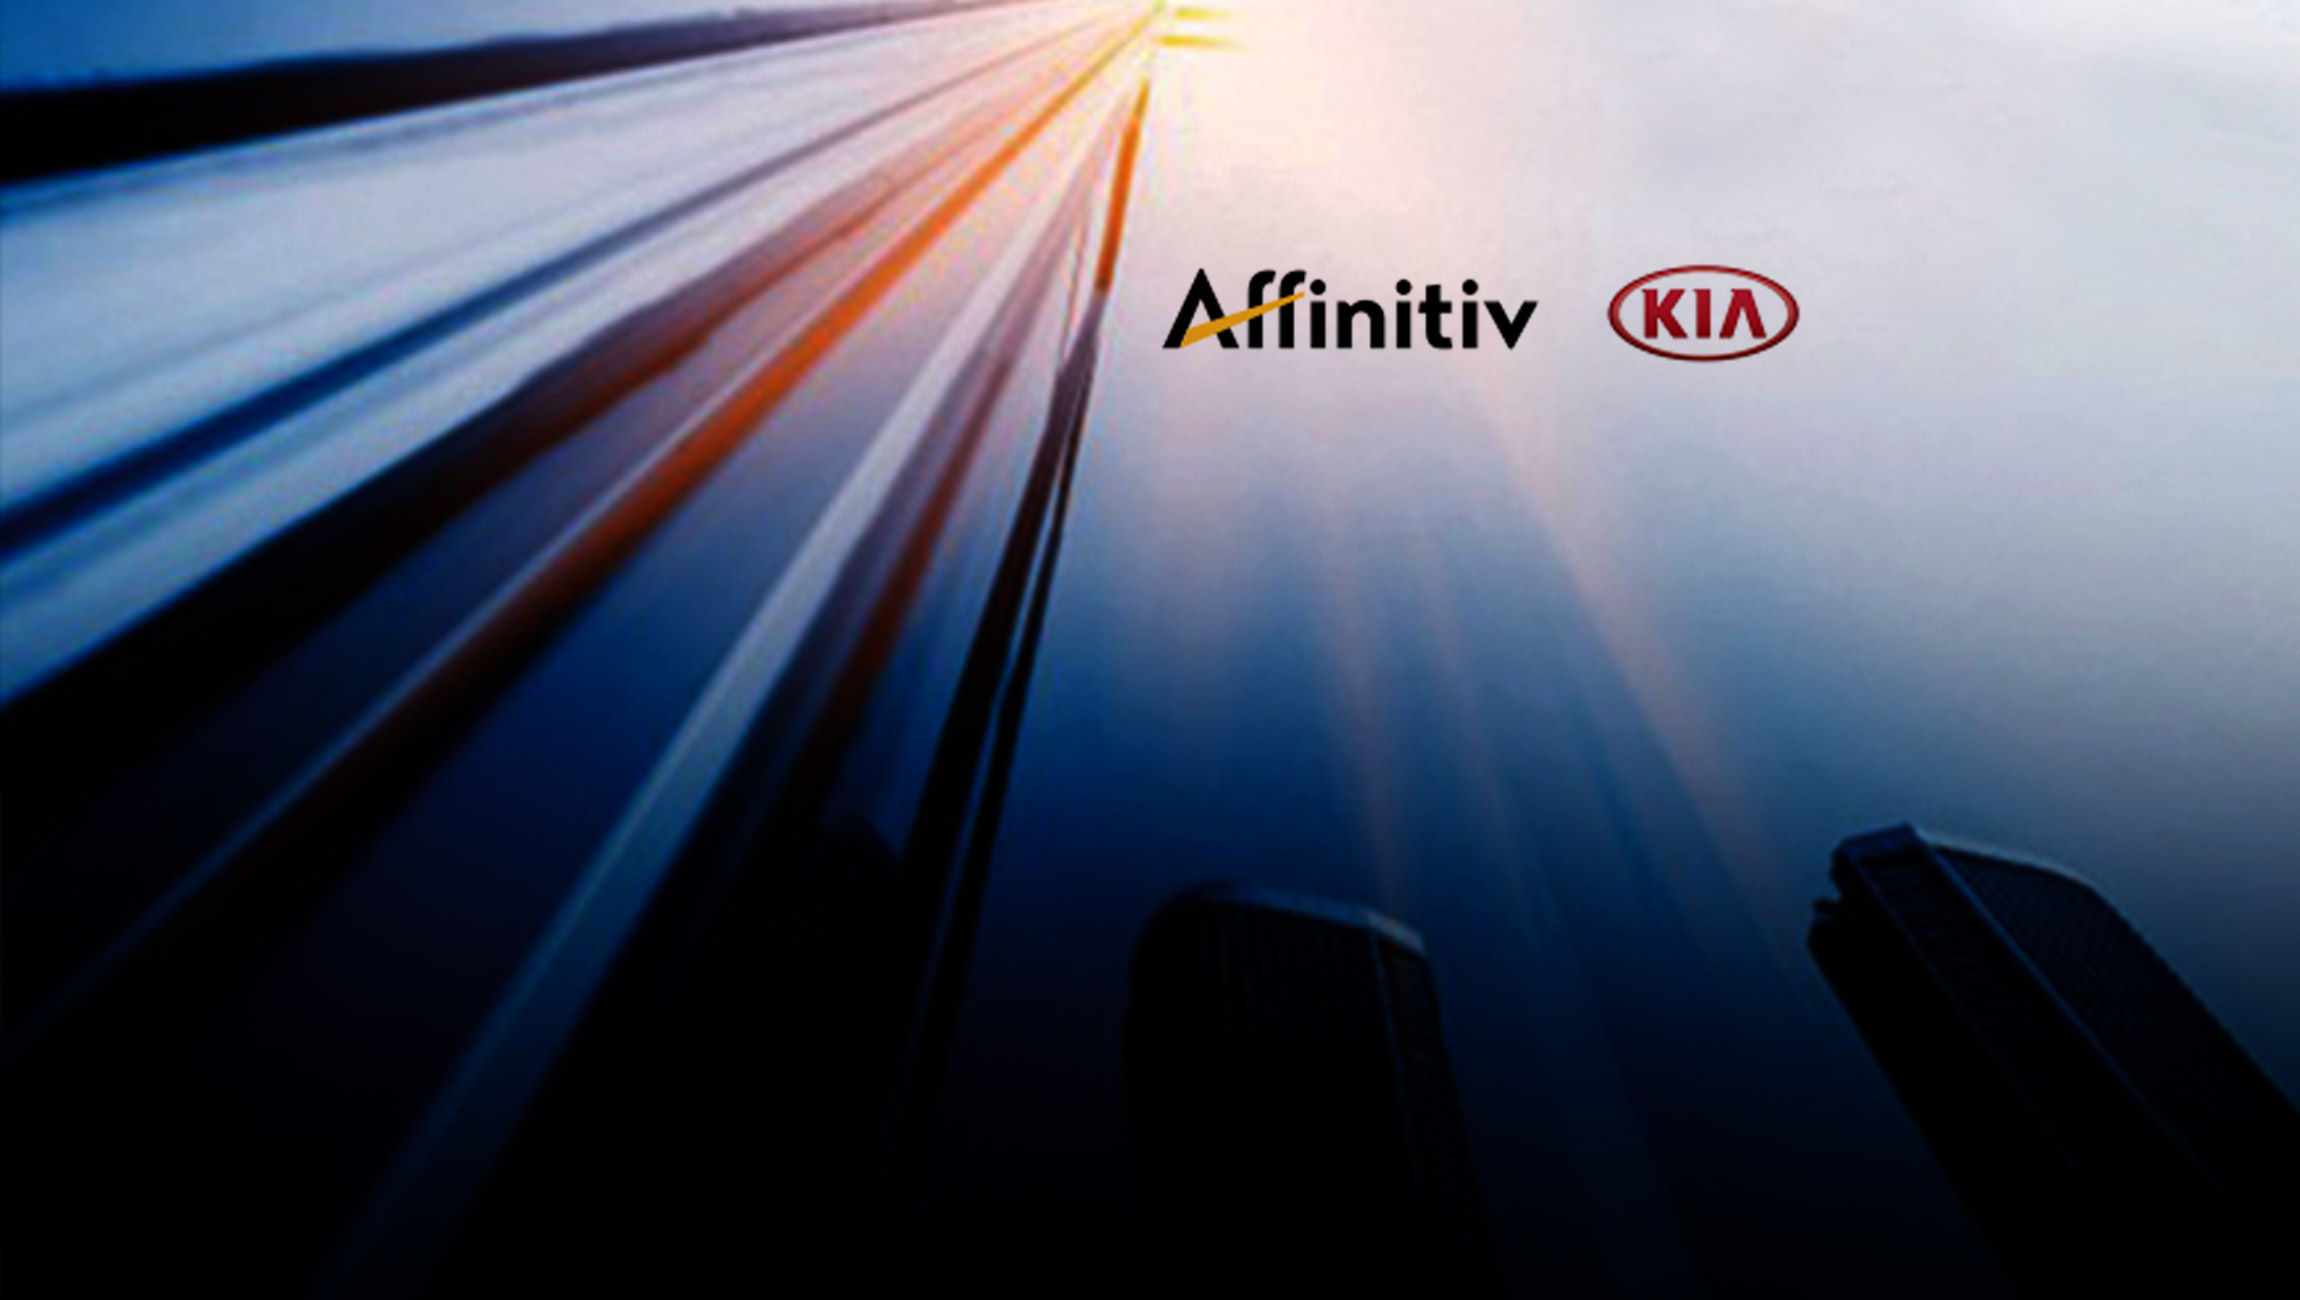 Affinitiv Announces Renewal of the Kia Owner Retention Experience (KORE) Program